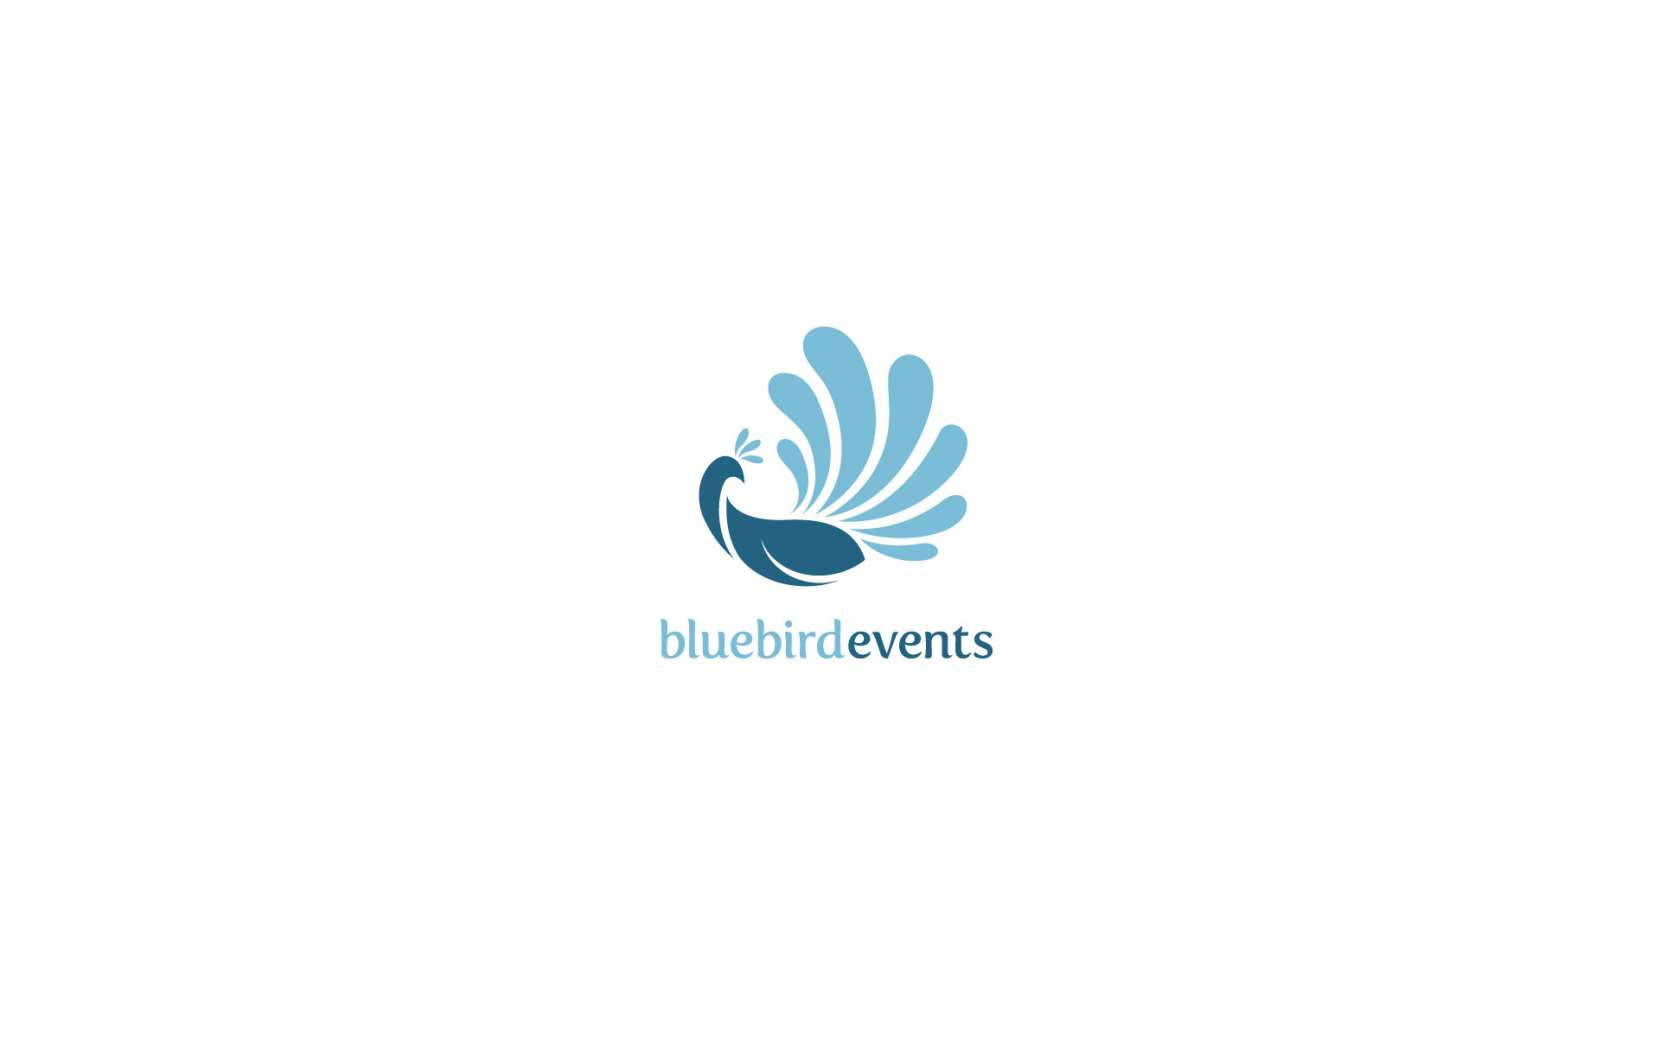 BlueBirdEvents.jpg